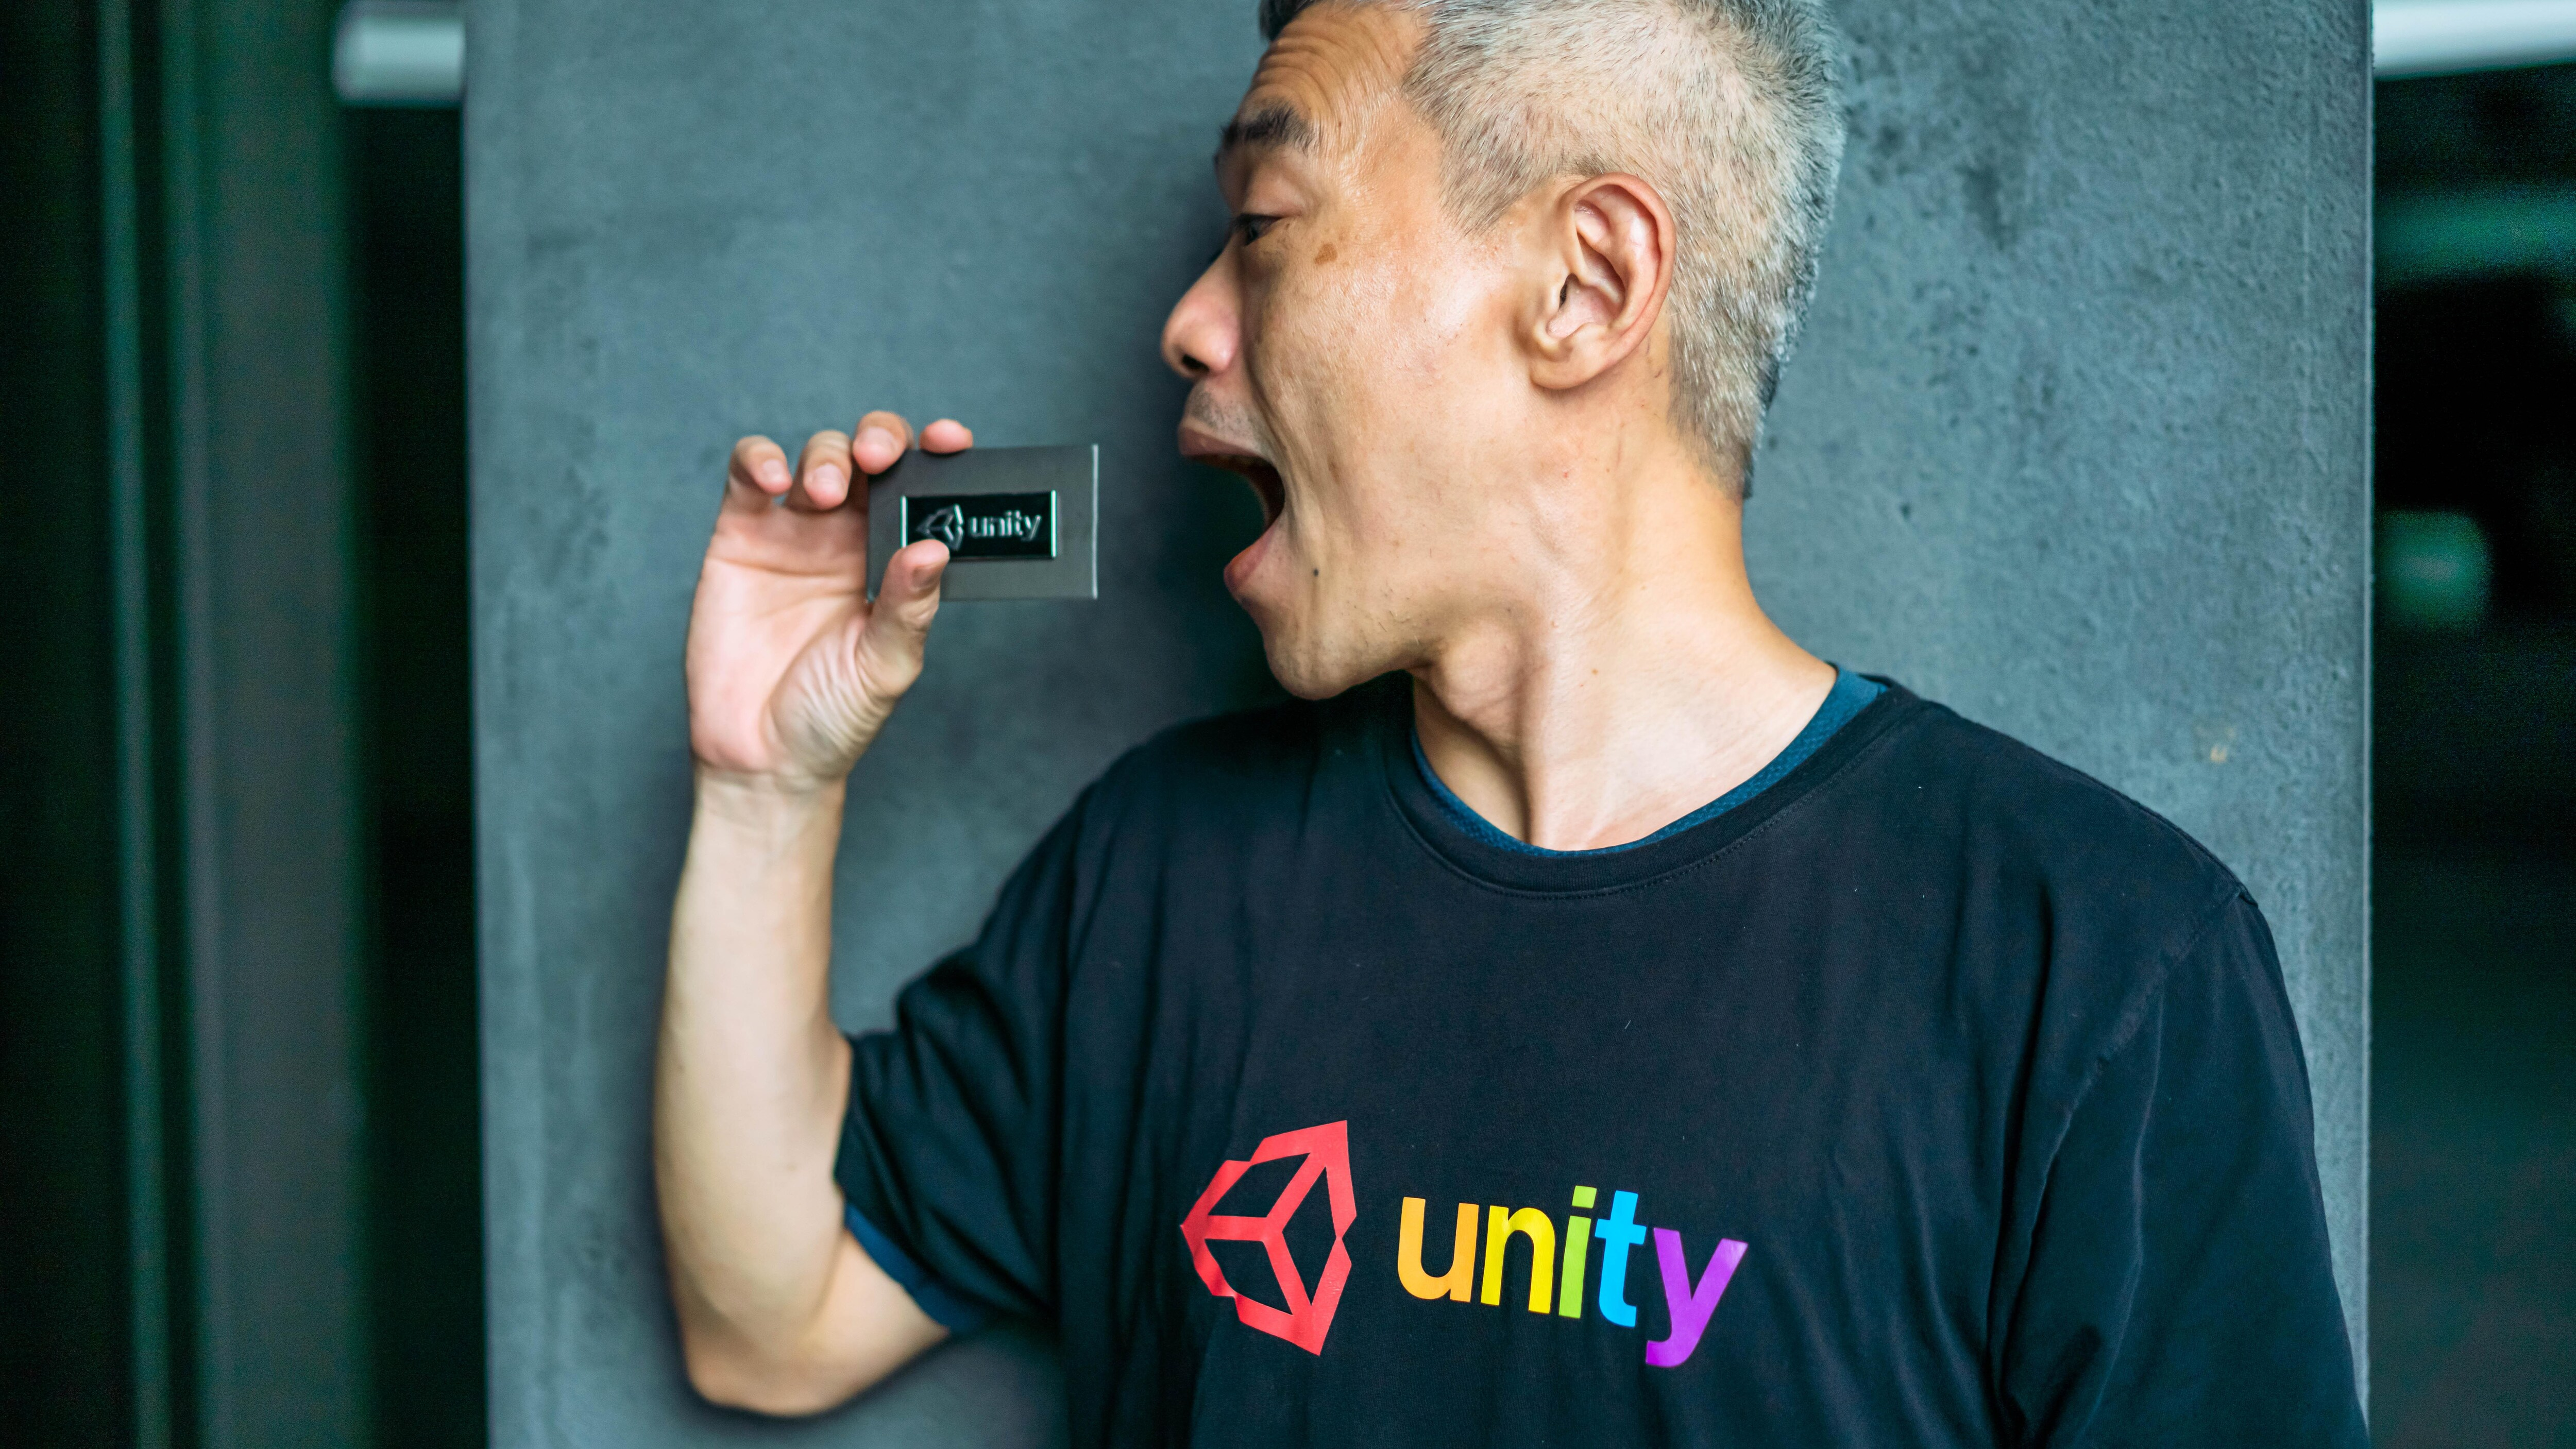 A person in a black Unity t-shirt with rainbow-colored text hold a Unity badge near his face.